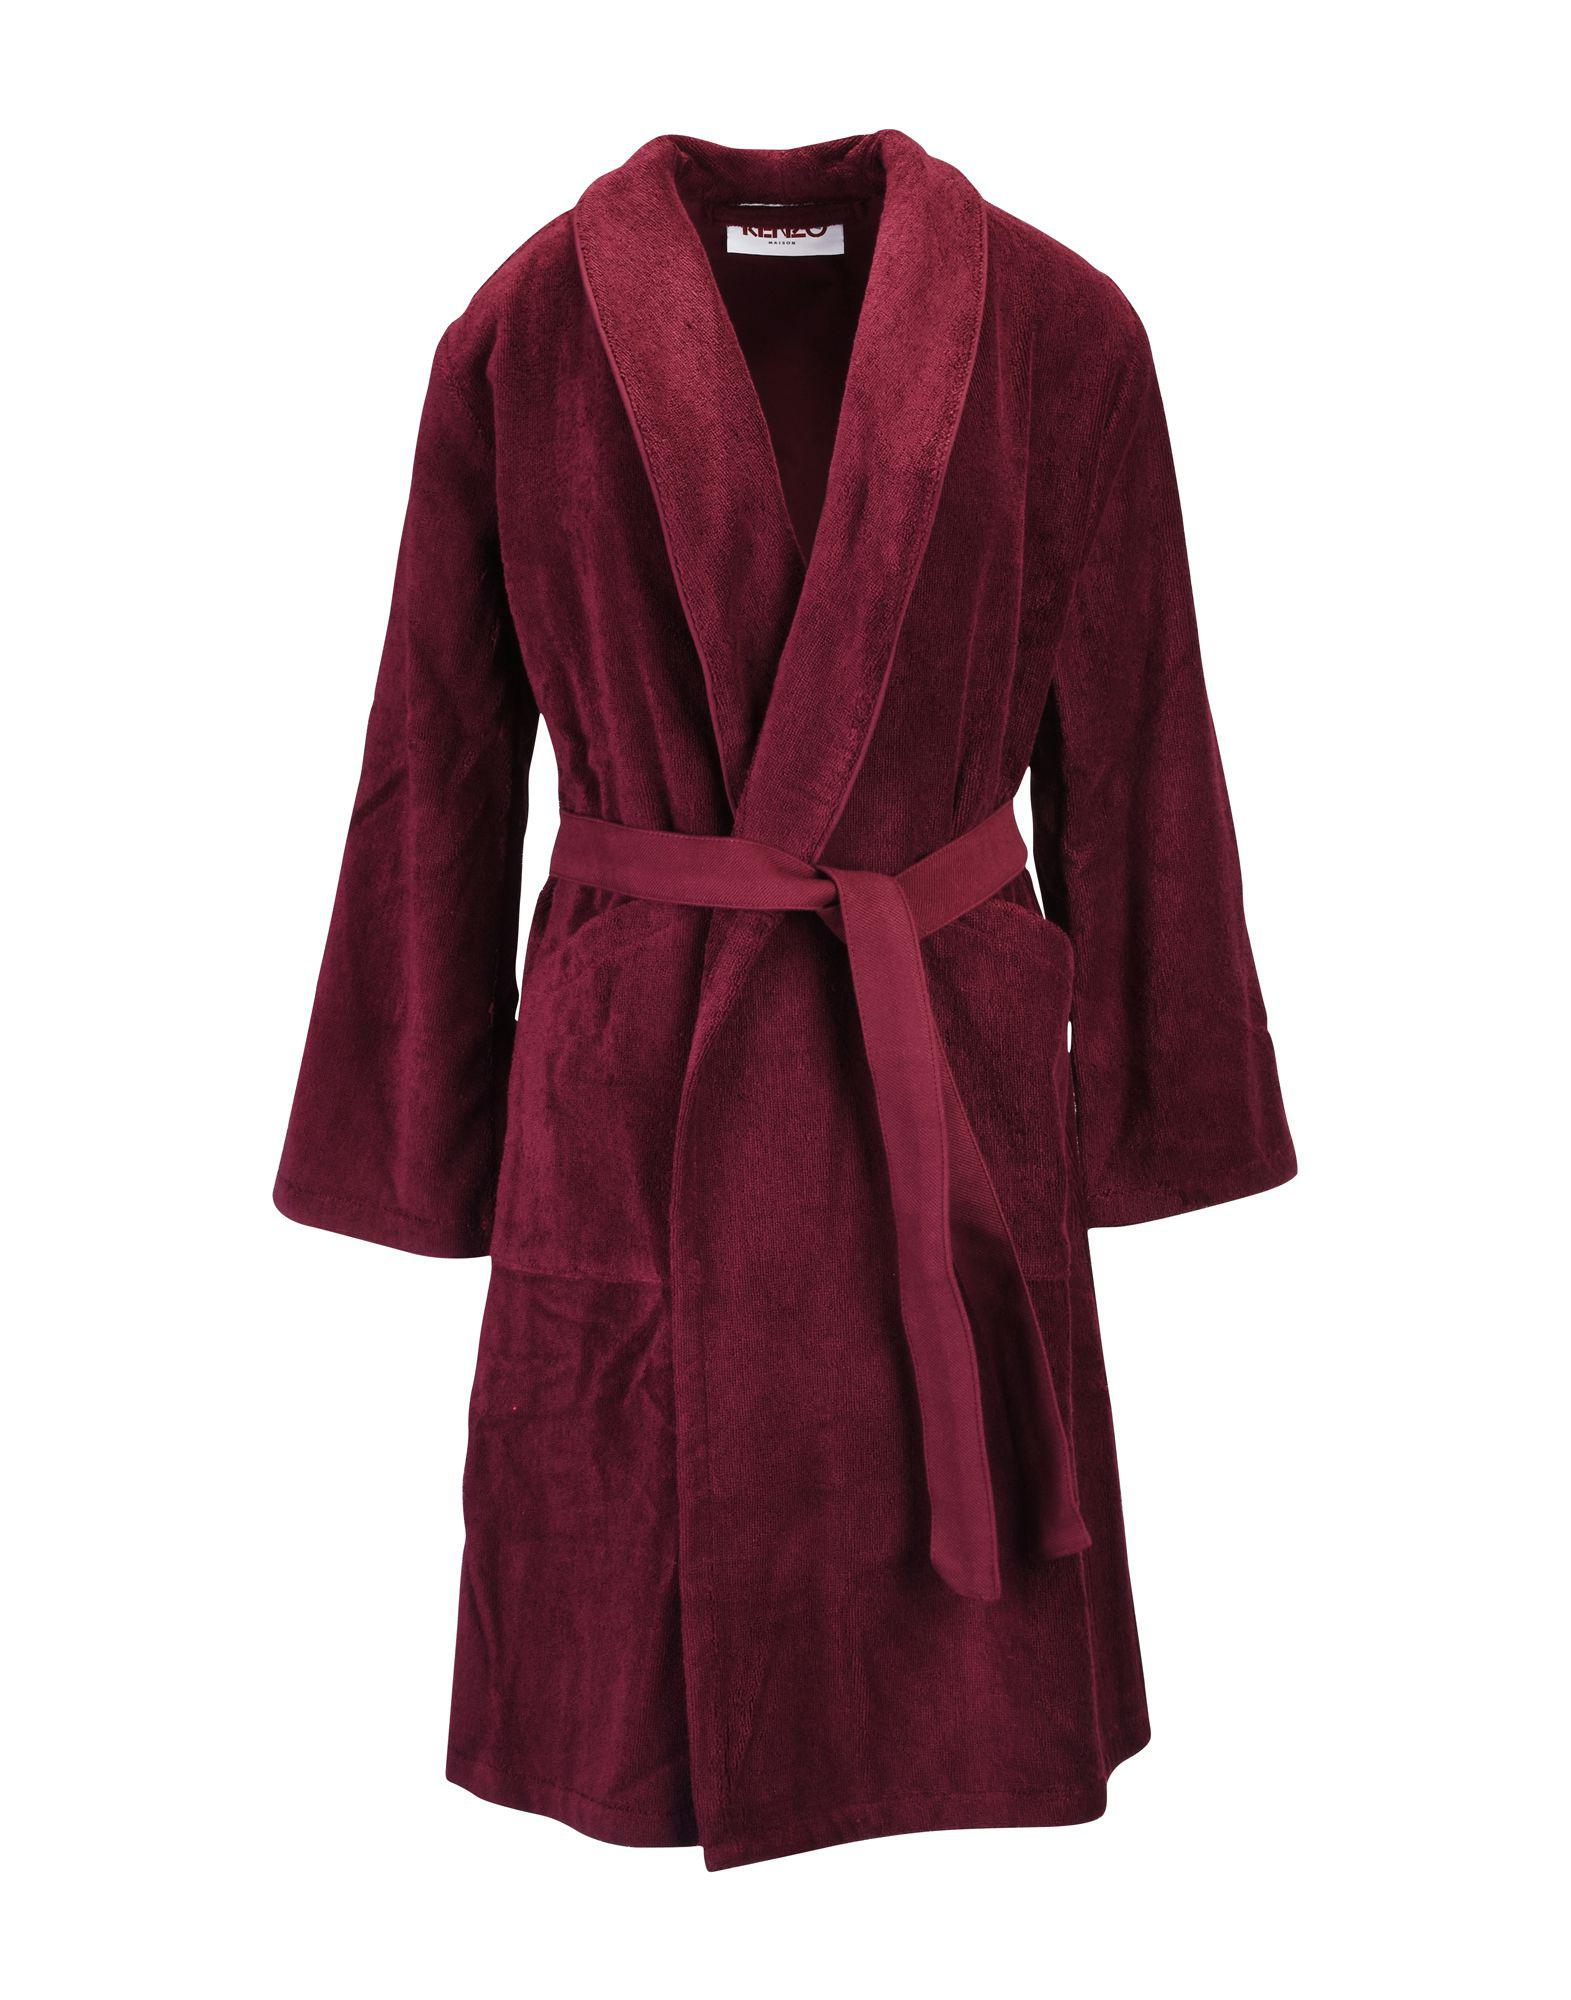 KENZO Towelling Dressing Gown in Red for Men - Lyst a67248003